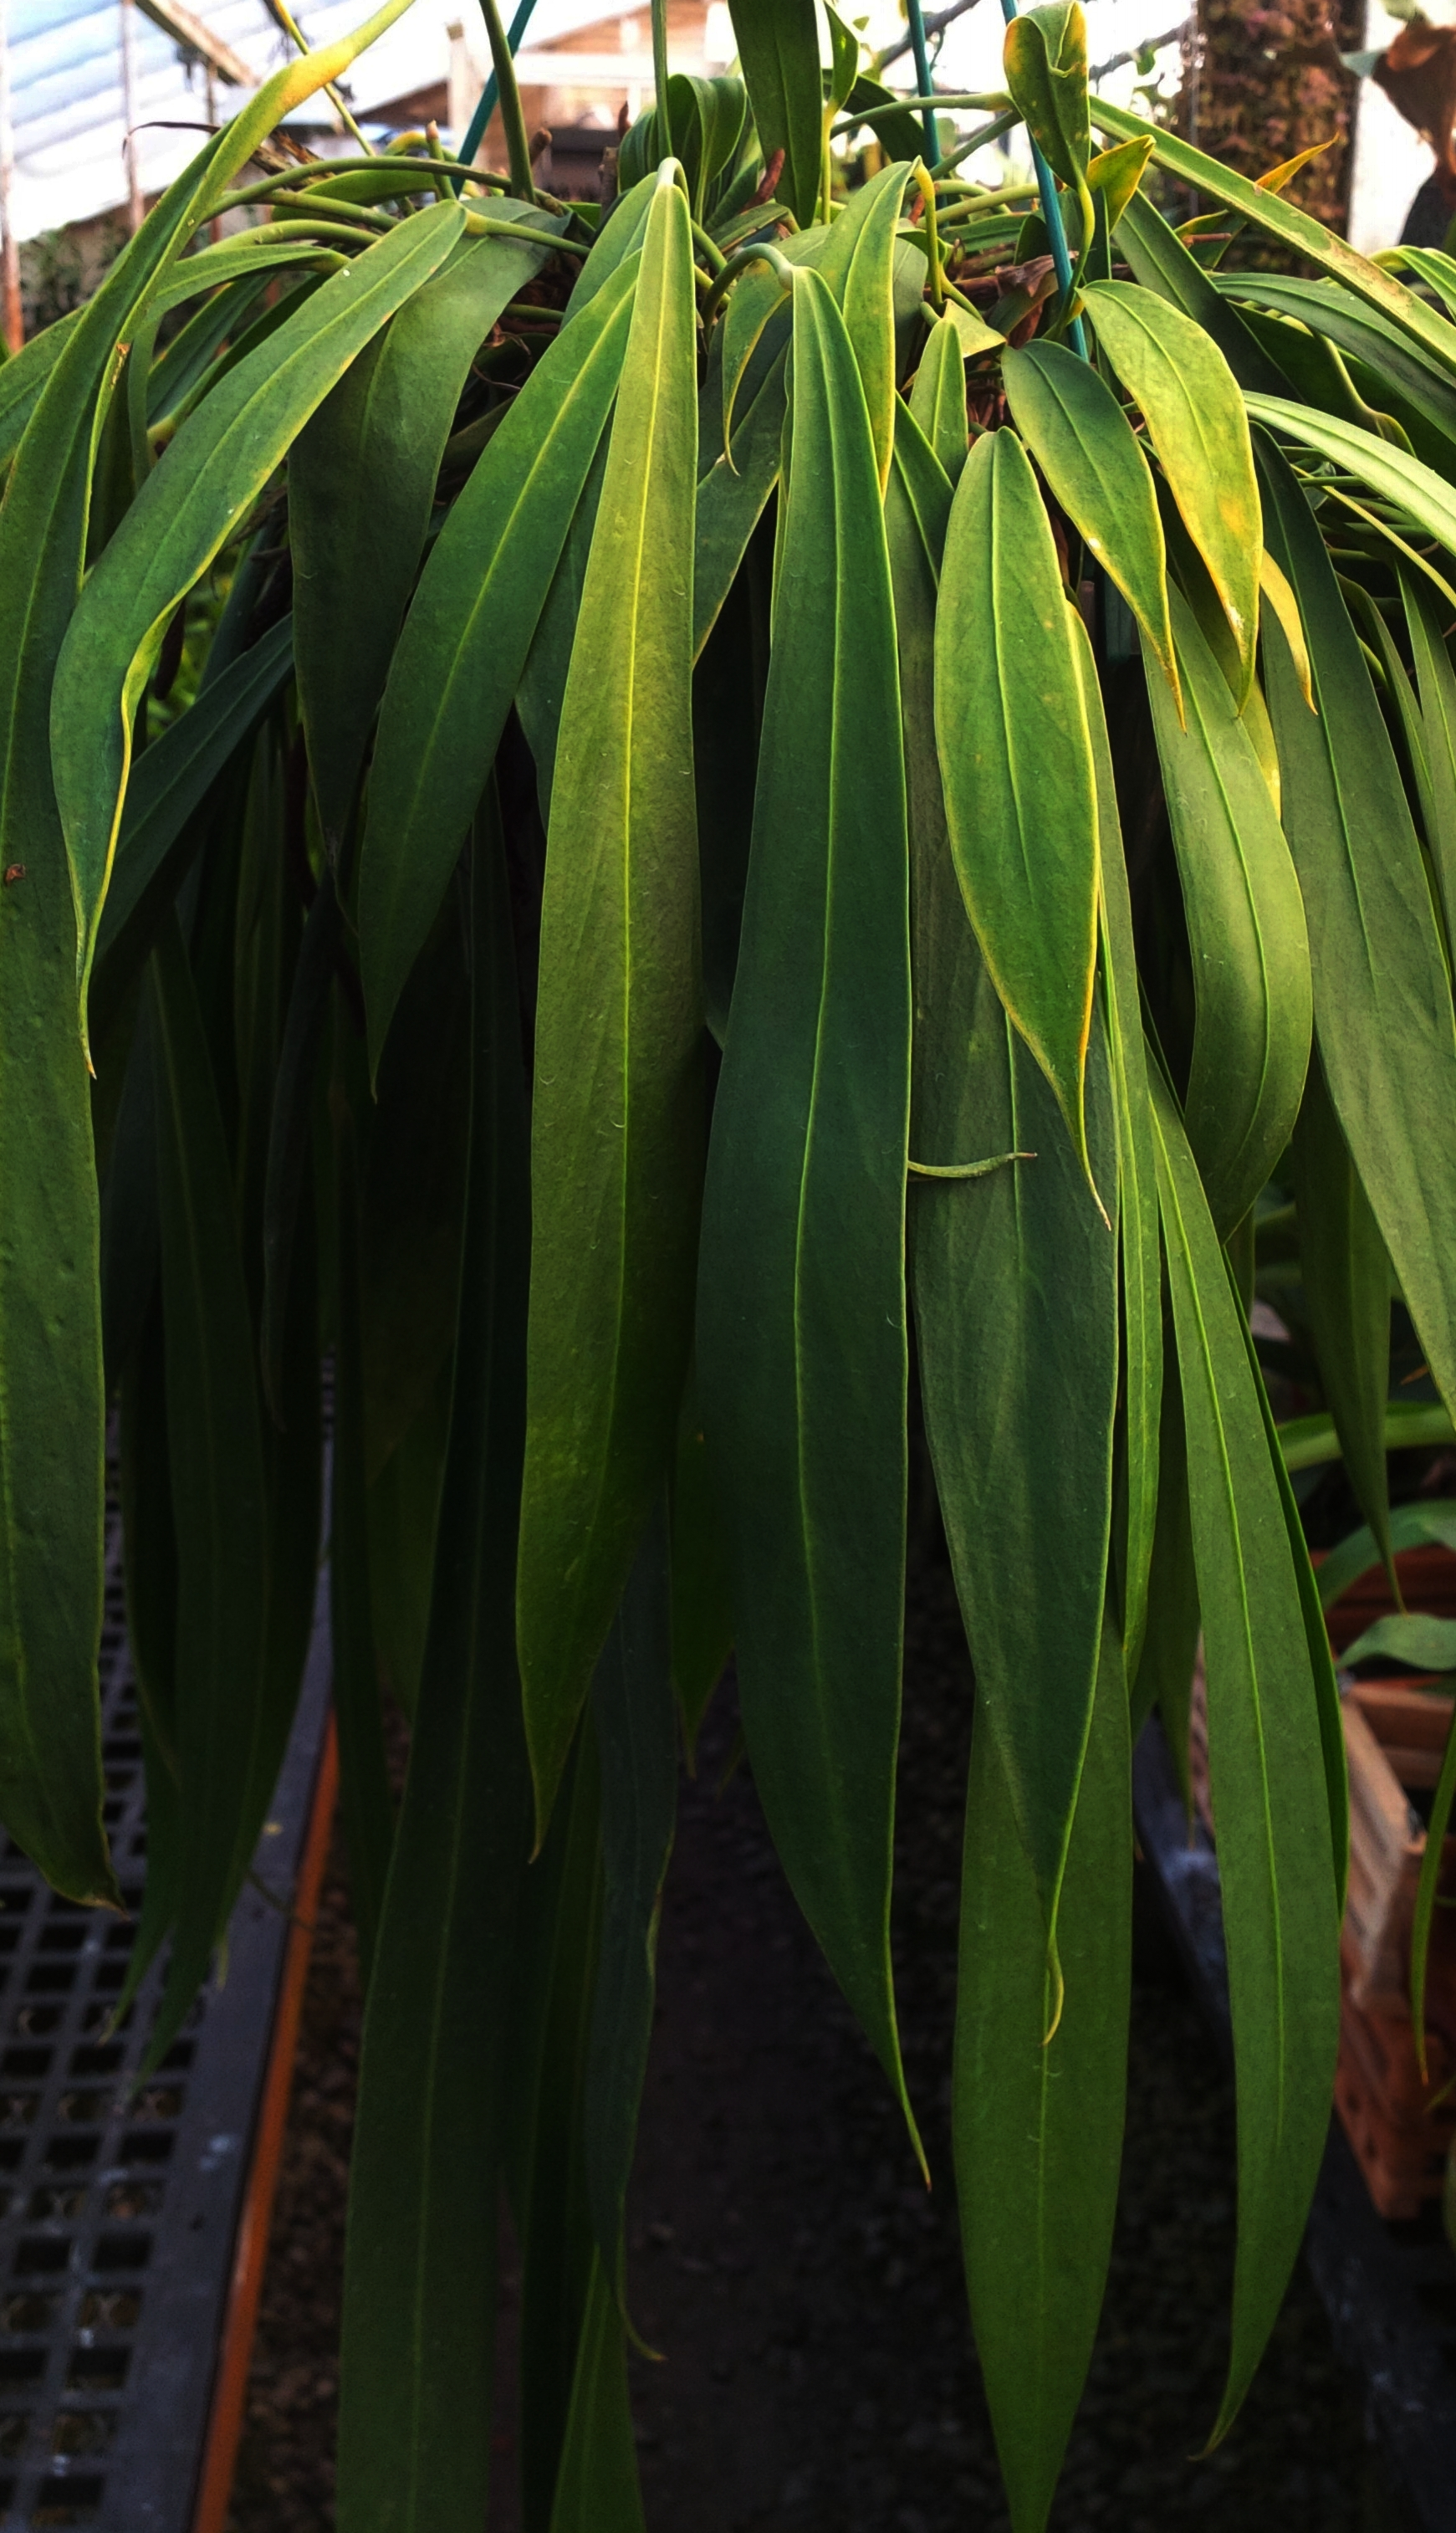 Mature  Anthurium pendens  from lowlands of Colón Province, Panamá in cultivation in California.